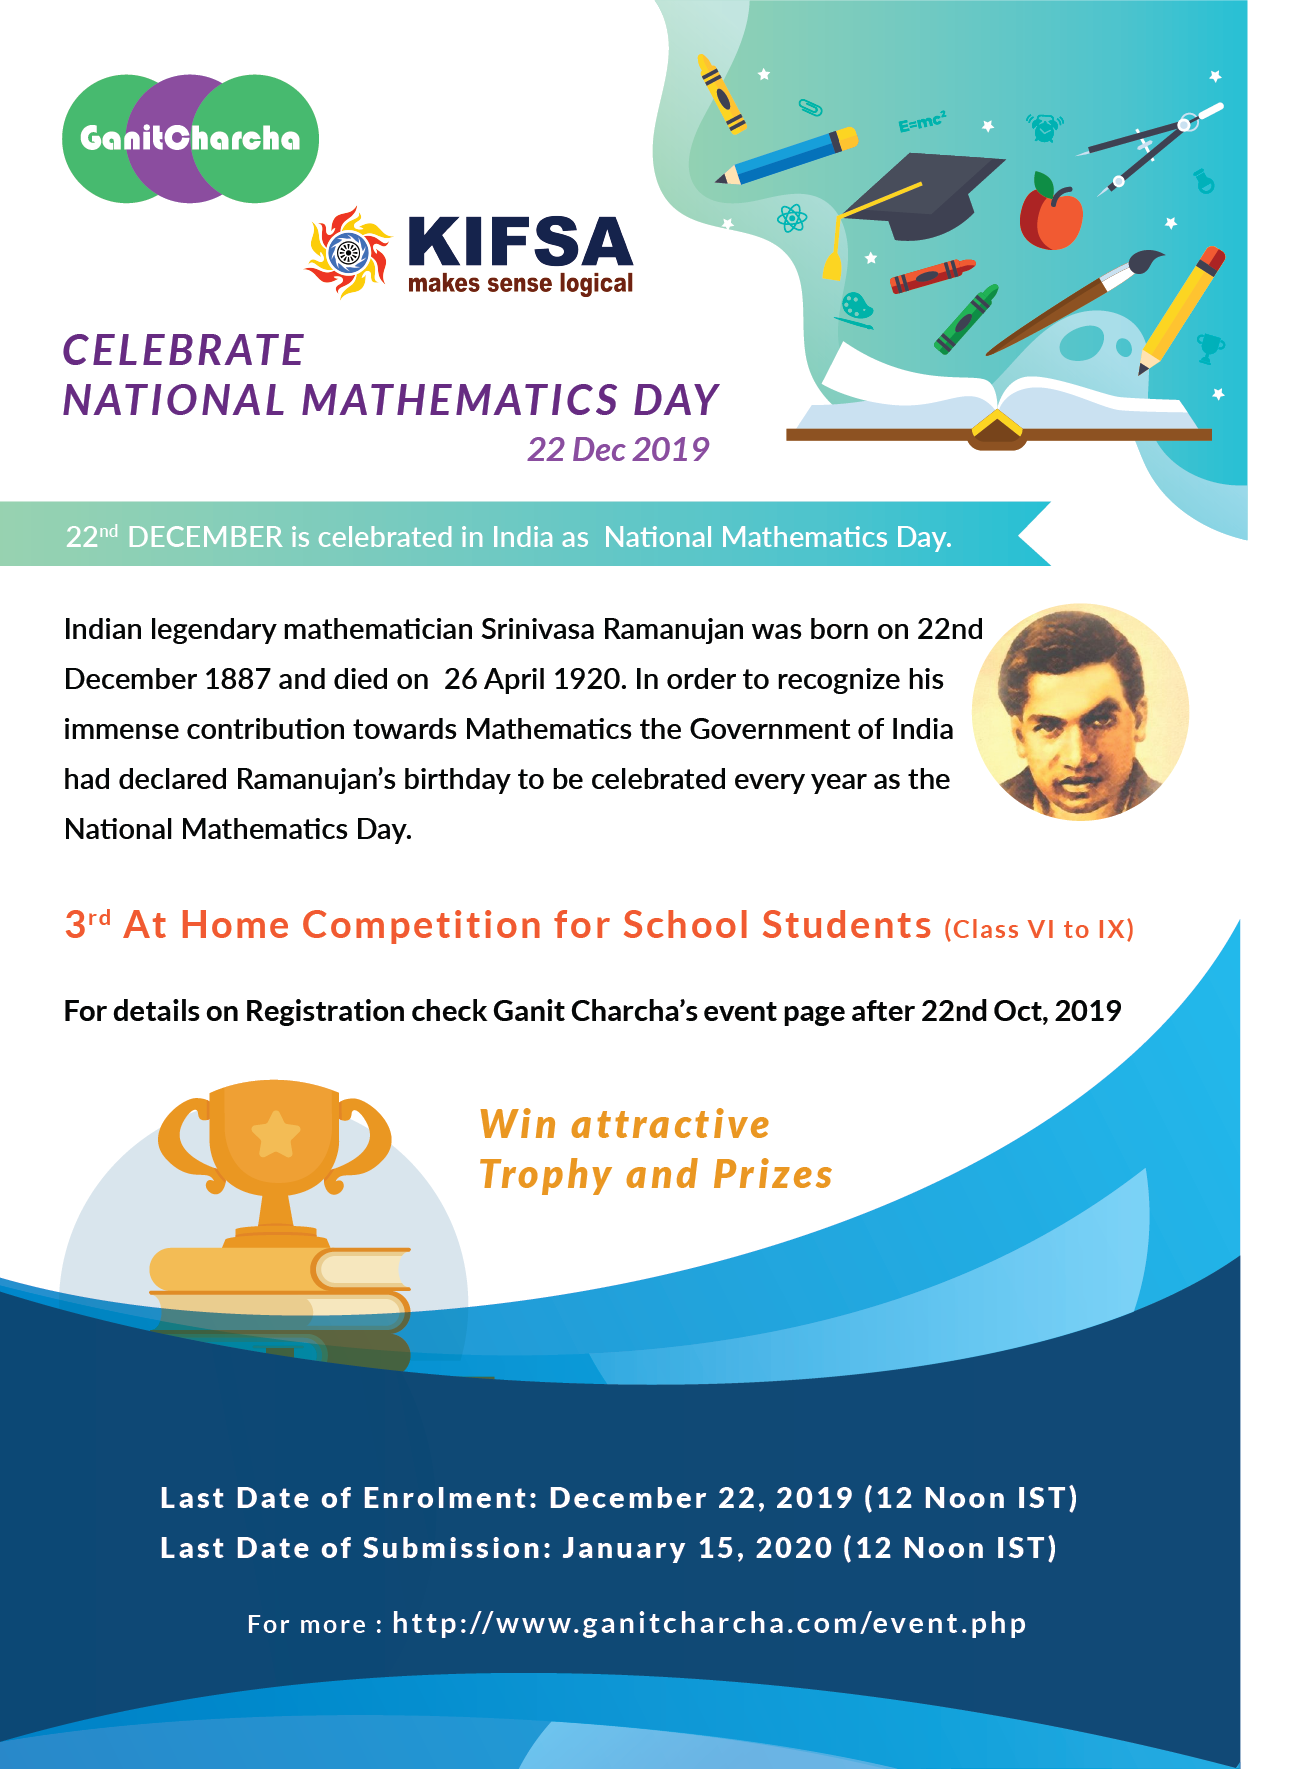 National Mathematics Day Celebration 2019 - 3rd At Home Competition for Students of Class VI to IX